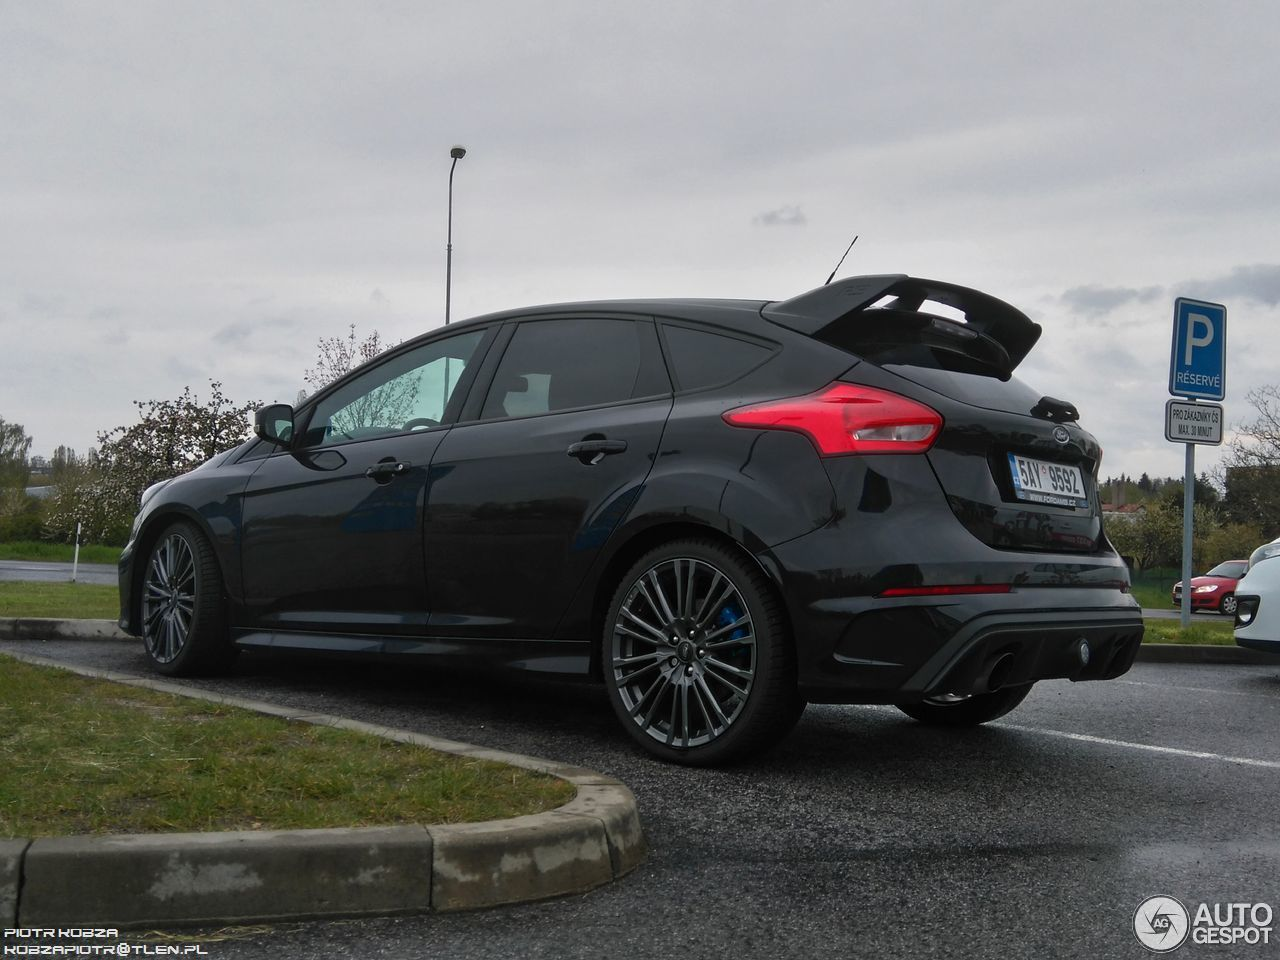 2015 ford focus rs images galleries with a bite. Black Bedroom Furniture Sets. Home Design Ideas